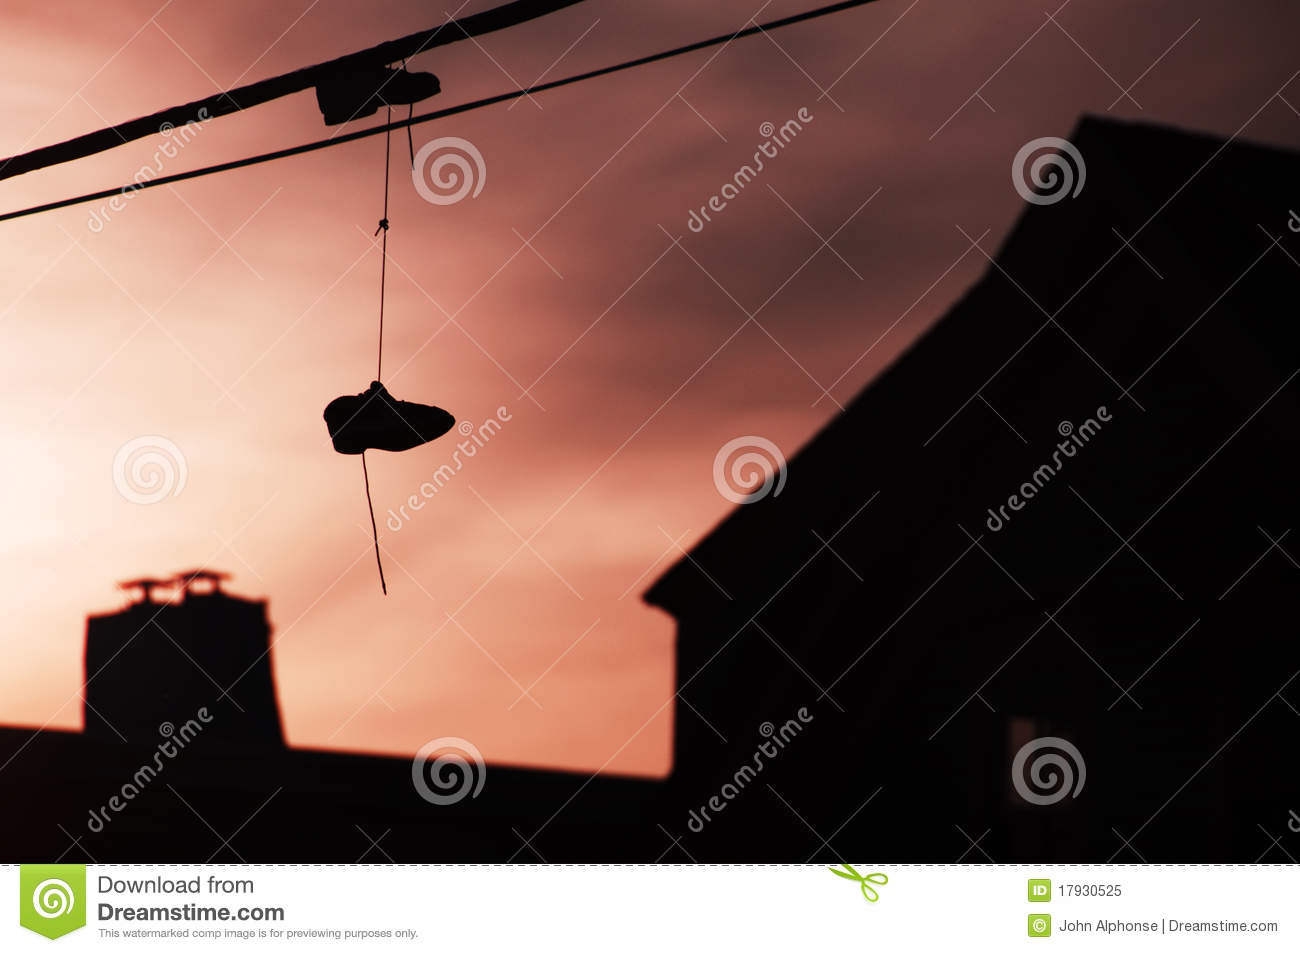 sneakers hanging from wire royalty free stock photo image 17930525 sneakers hanging from wire royalty free stock photo